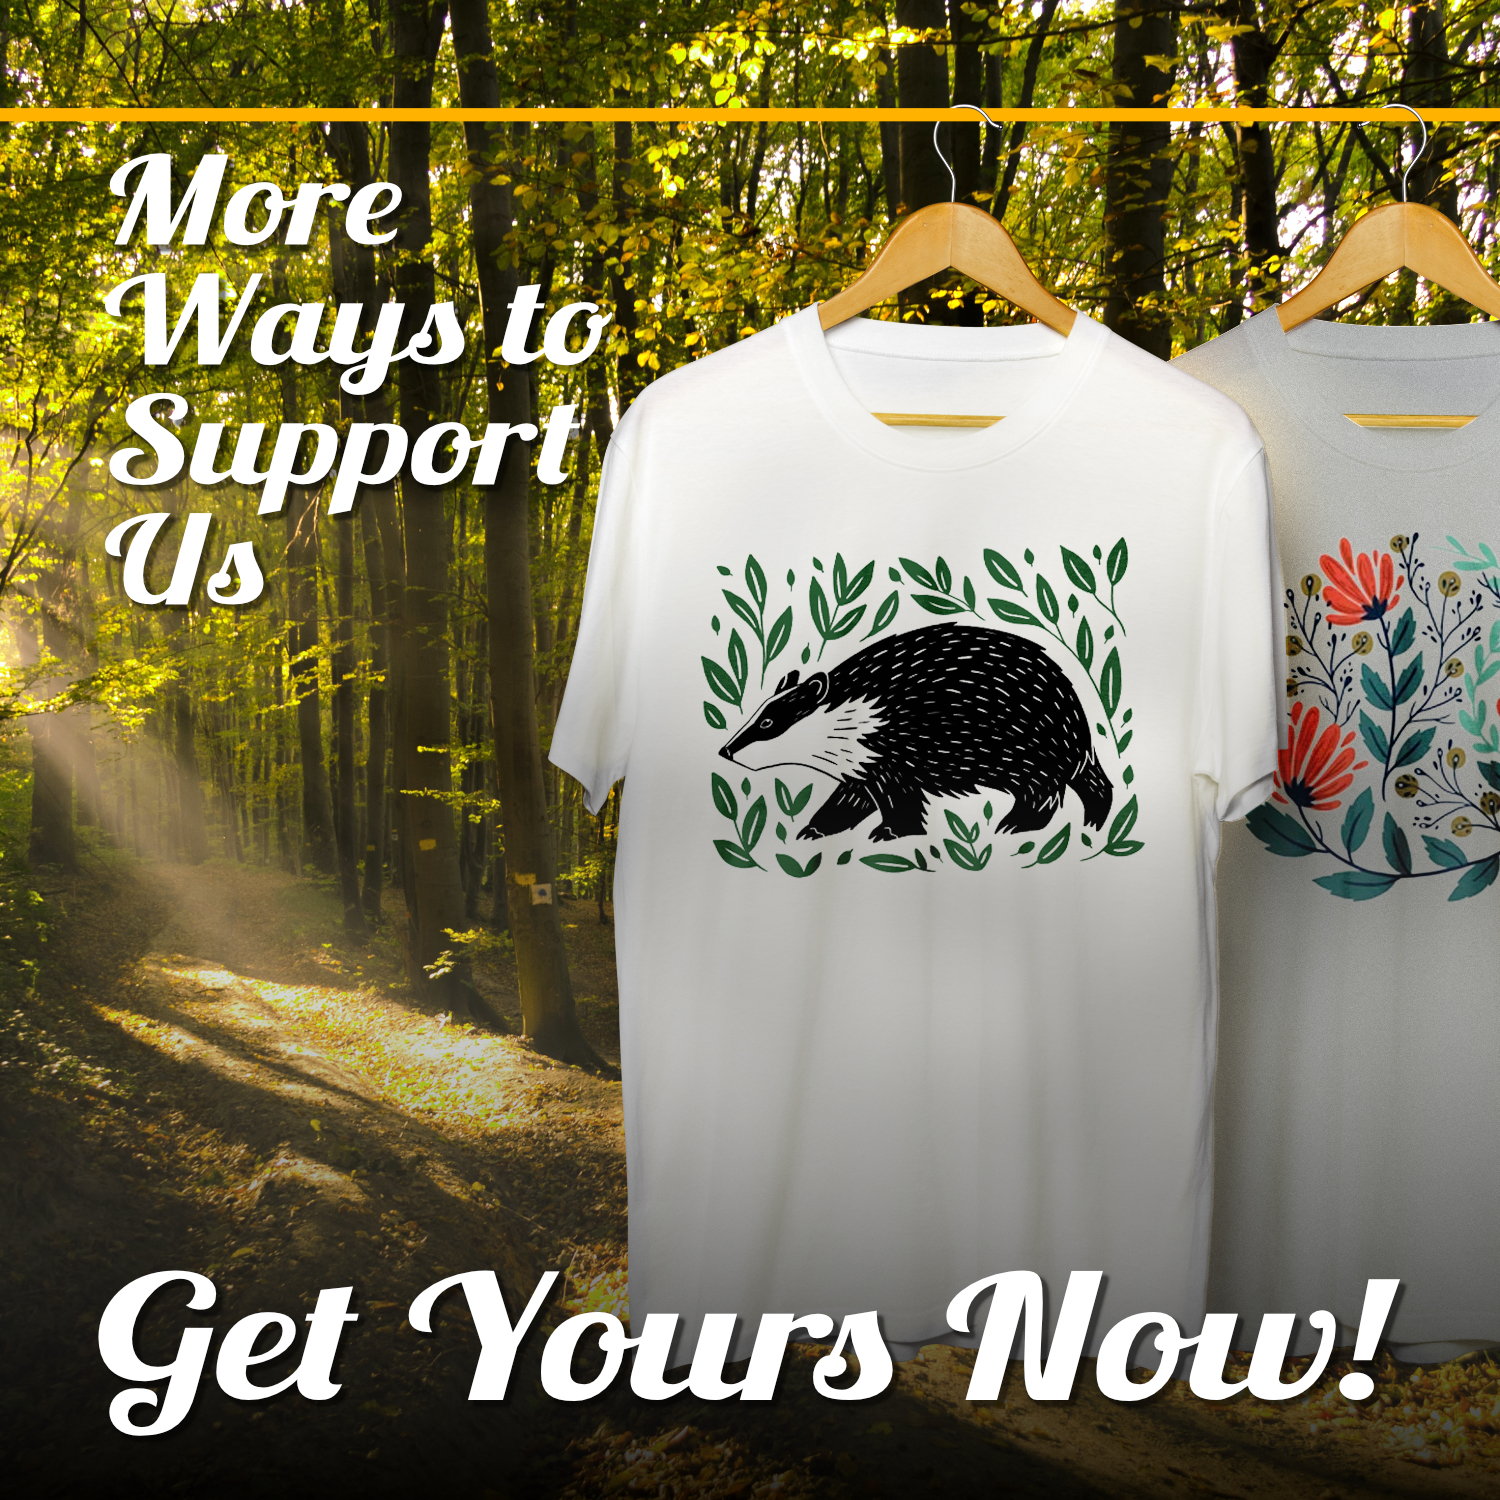 Advert for our Teemill shop with image of t-shirts on a woodland backdrop. Text reads 'More Ways to Support Us' and 'Get Yours Now!'